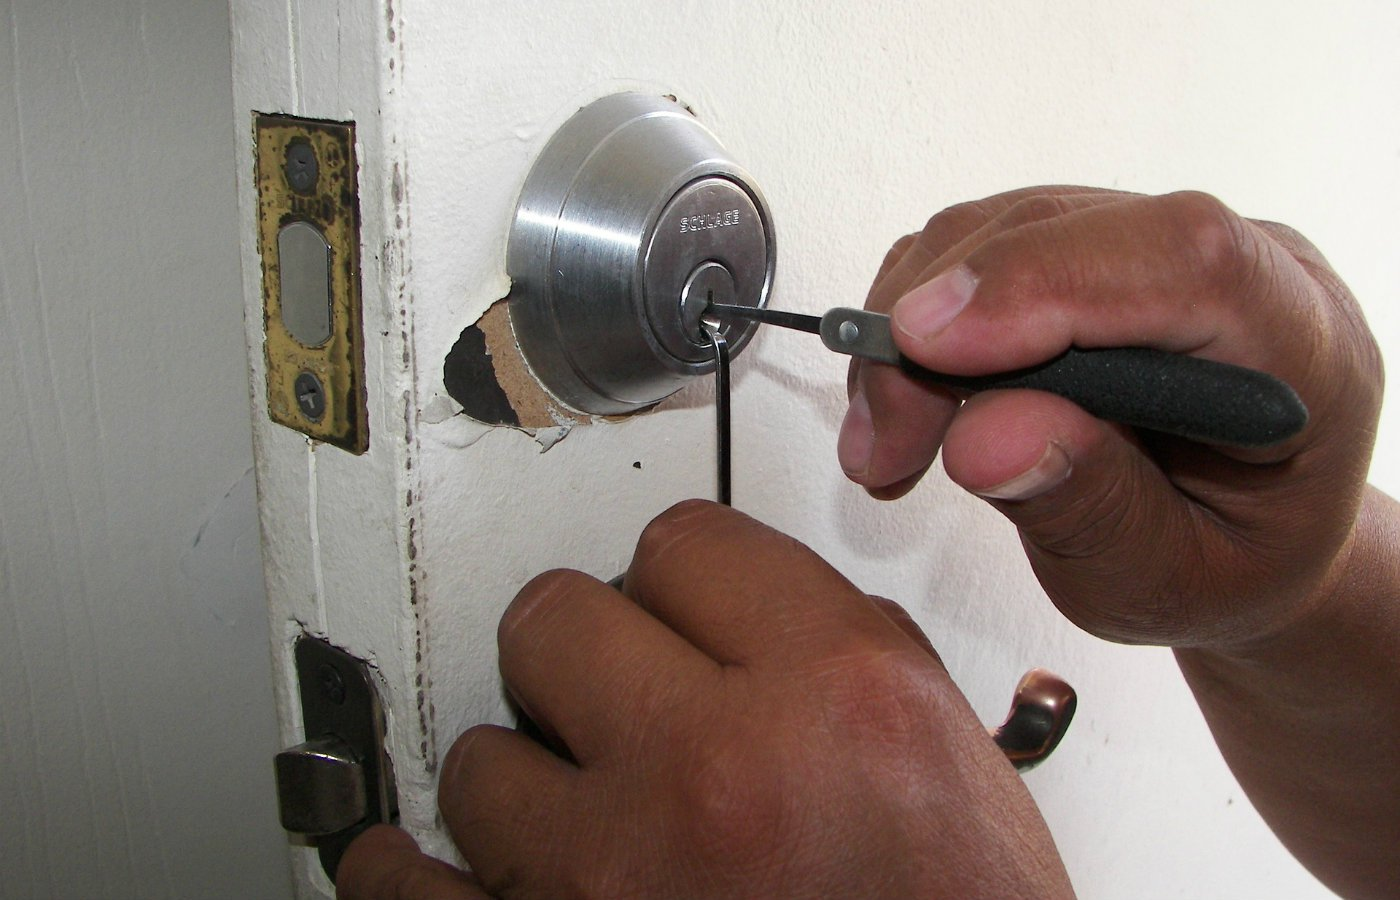 can a tenant hire a locksmith rights .jpg